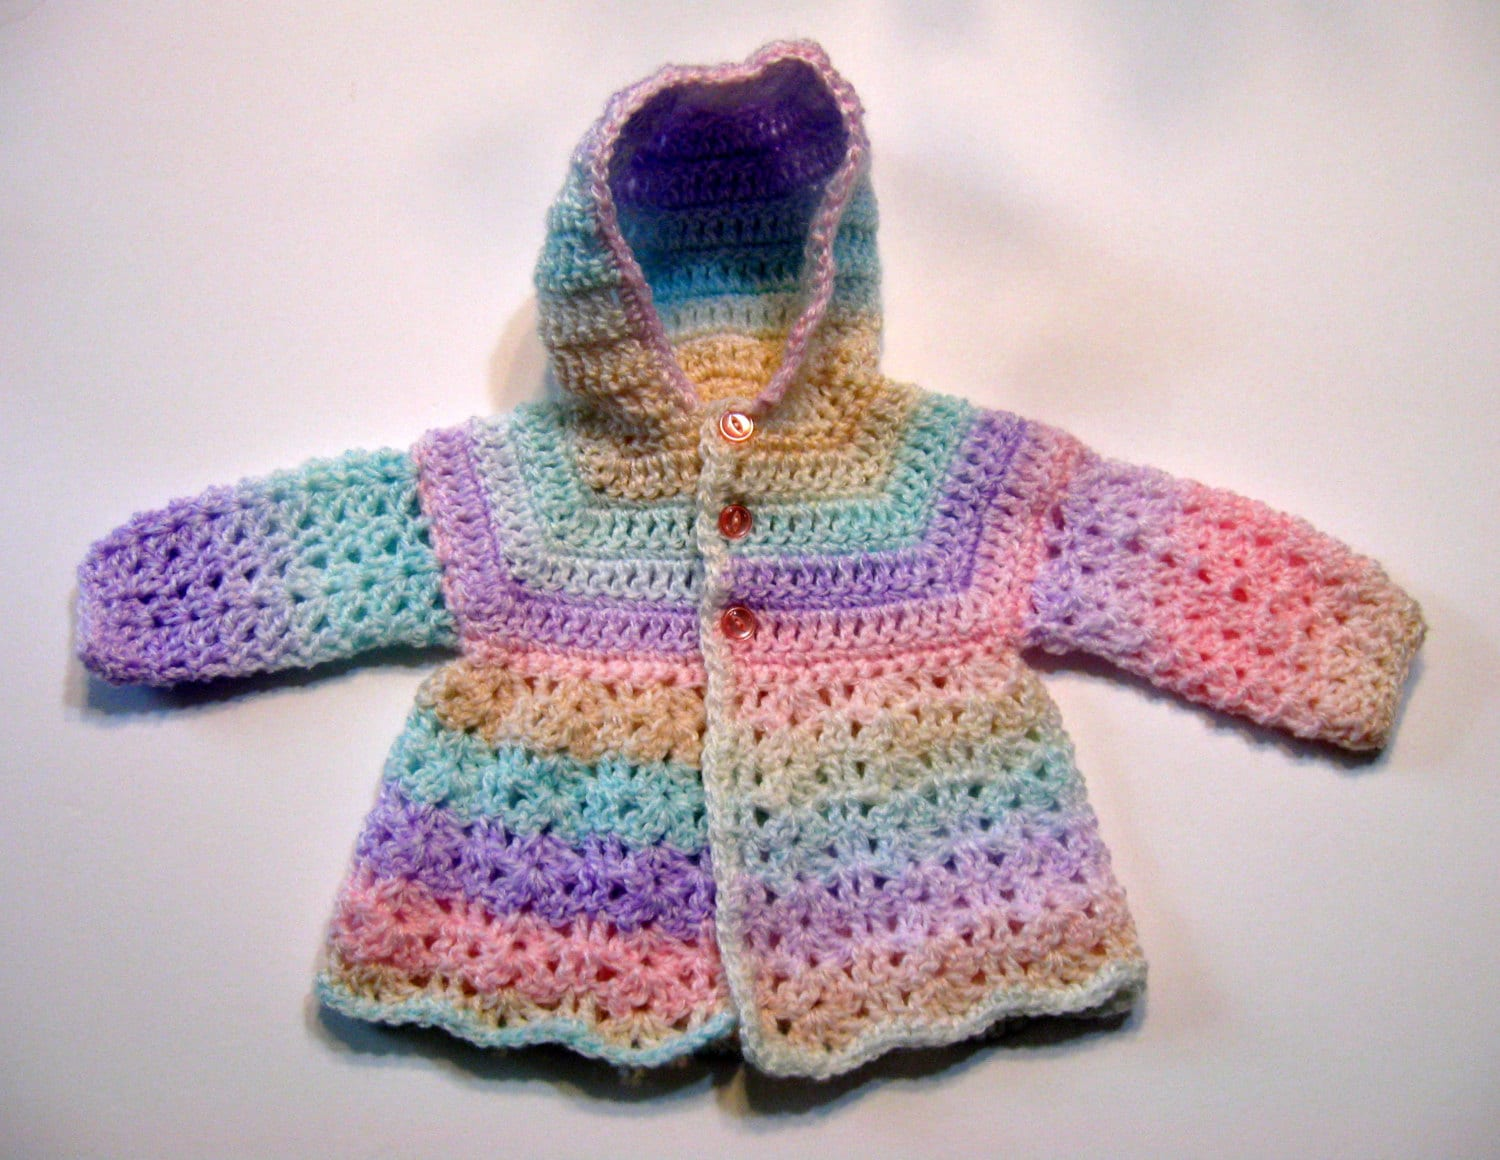 Hood Crochet Pattern, Baby Sweater, Top Down, Hood Seam Only ...